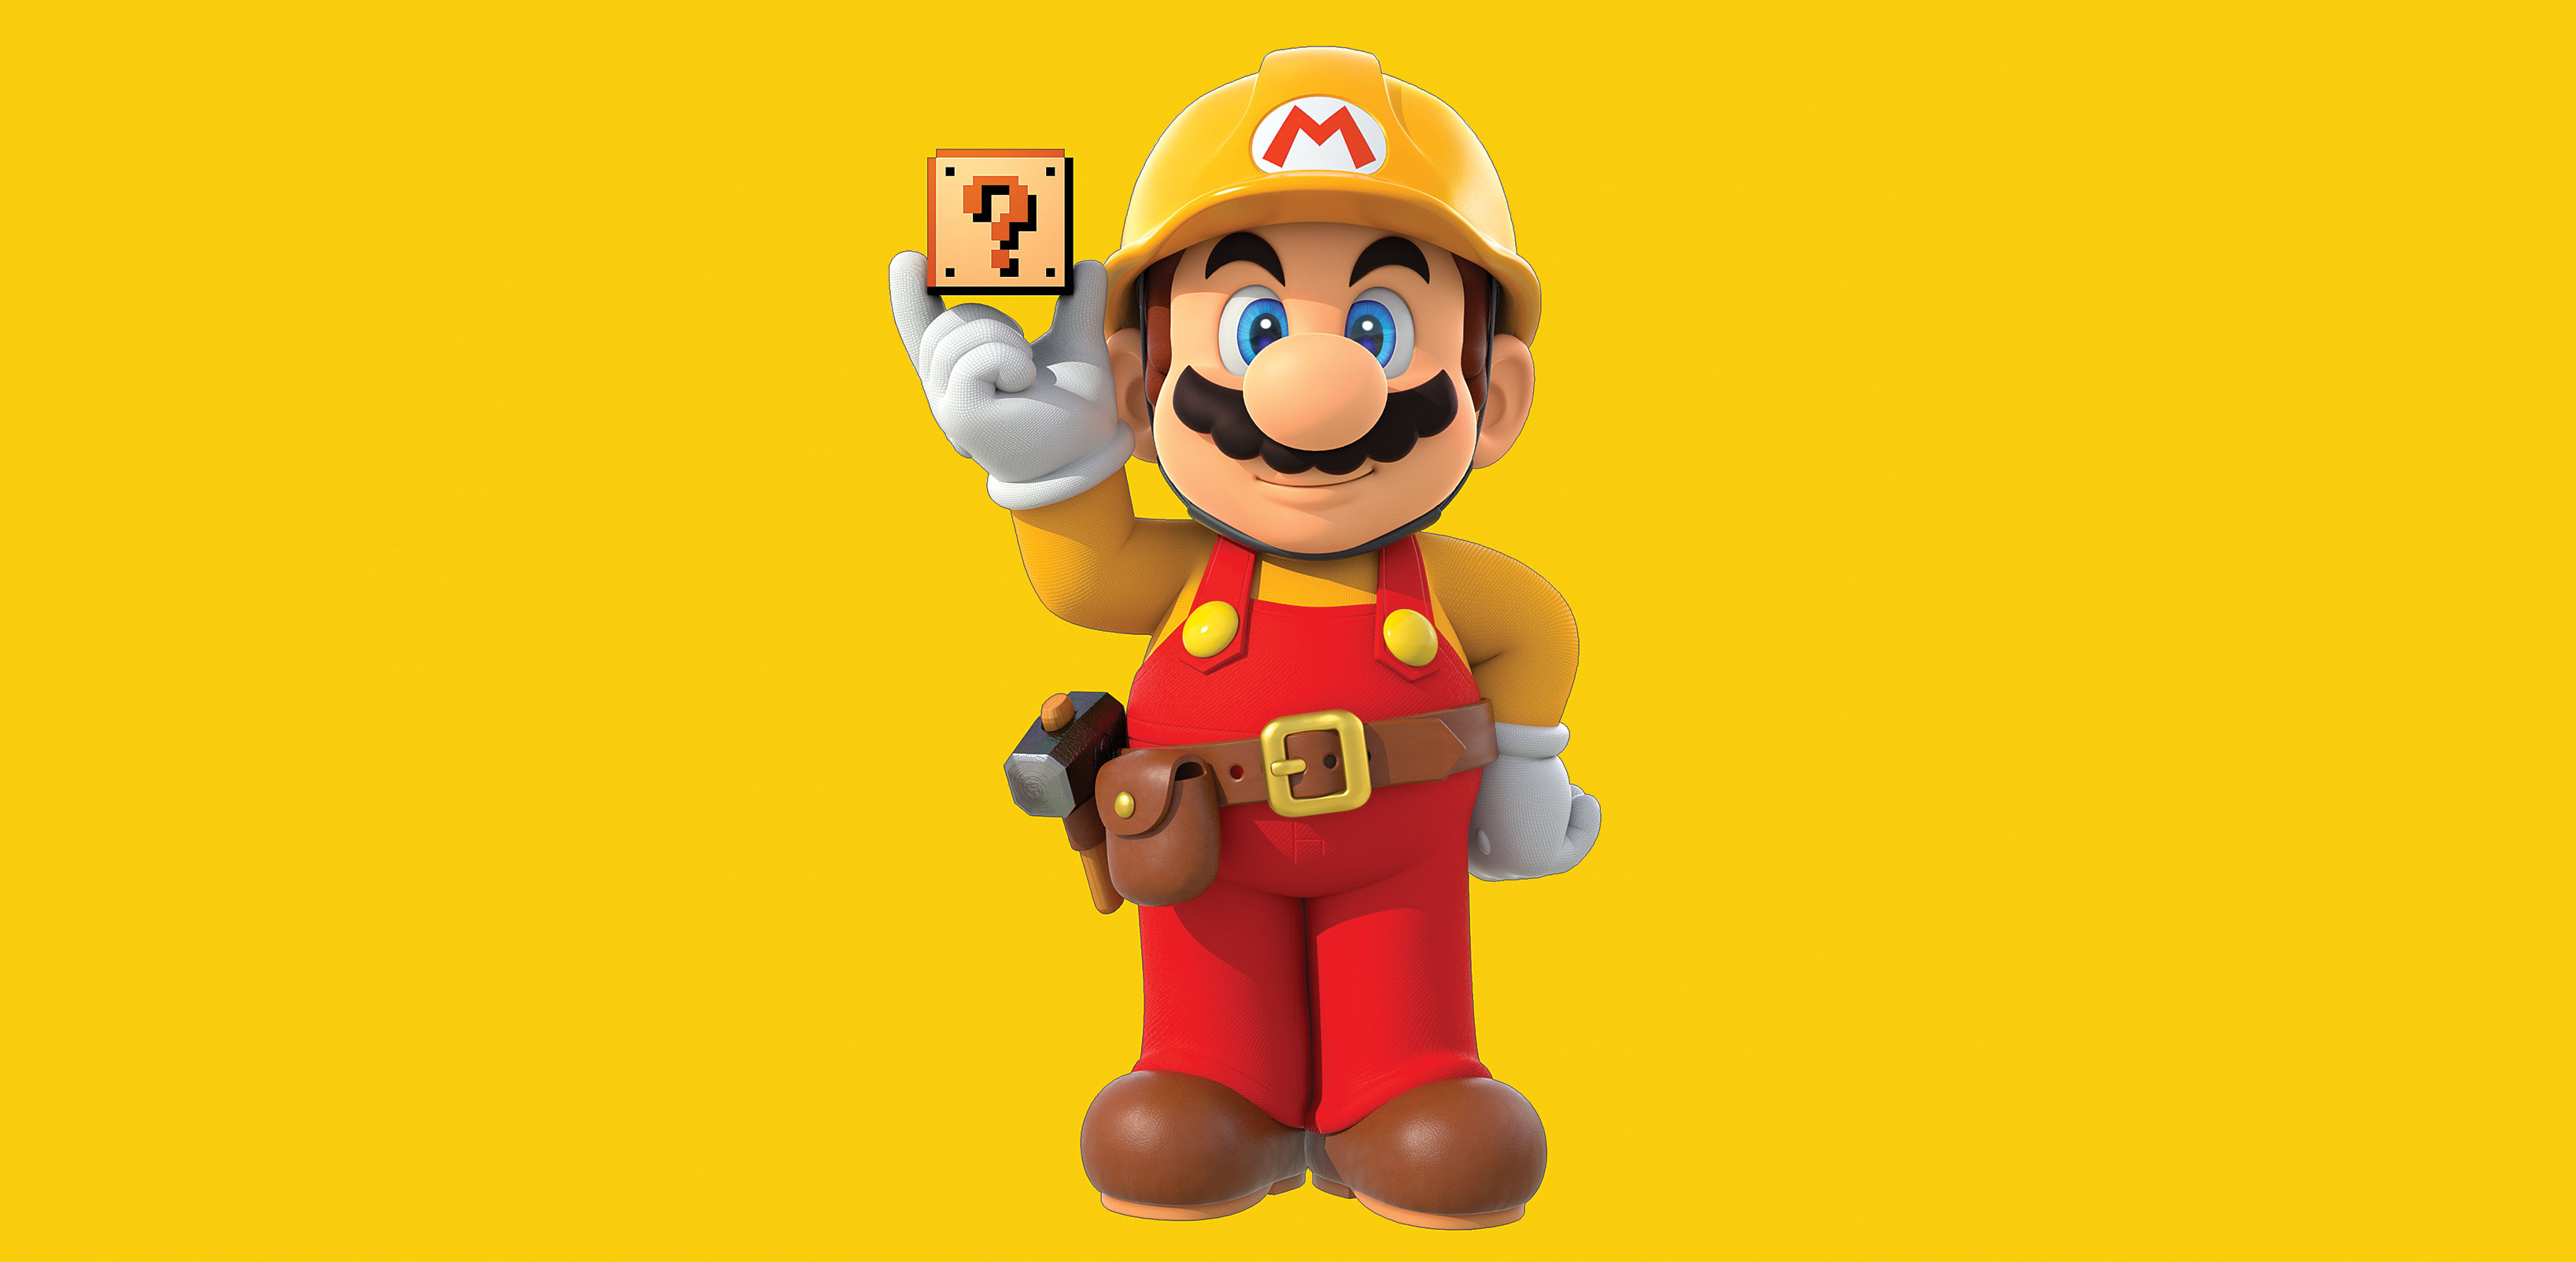 Mario Maker 2 is the perfect game for the age of YouTube and